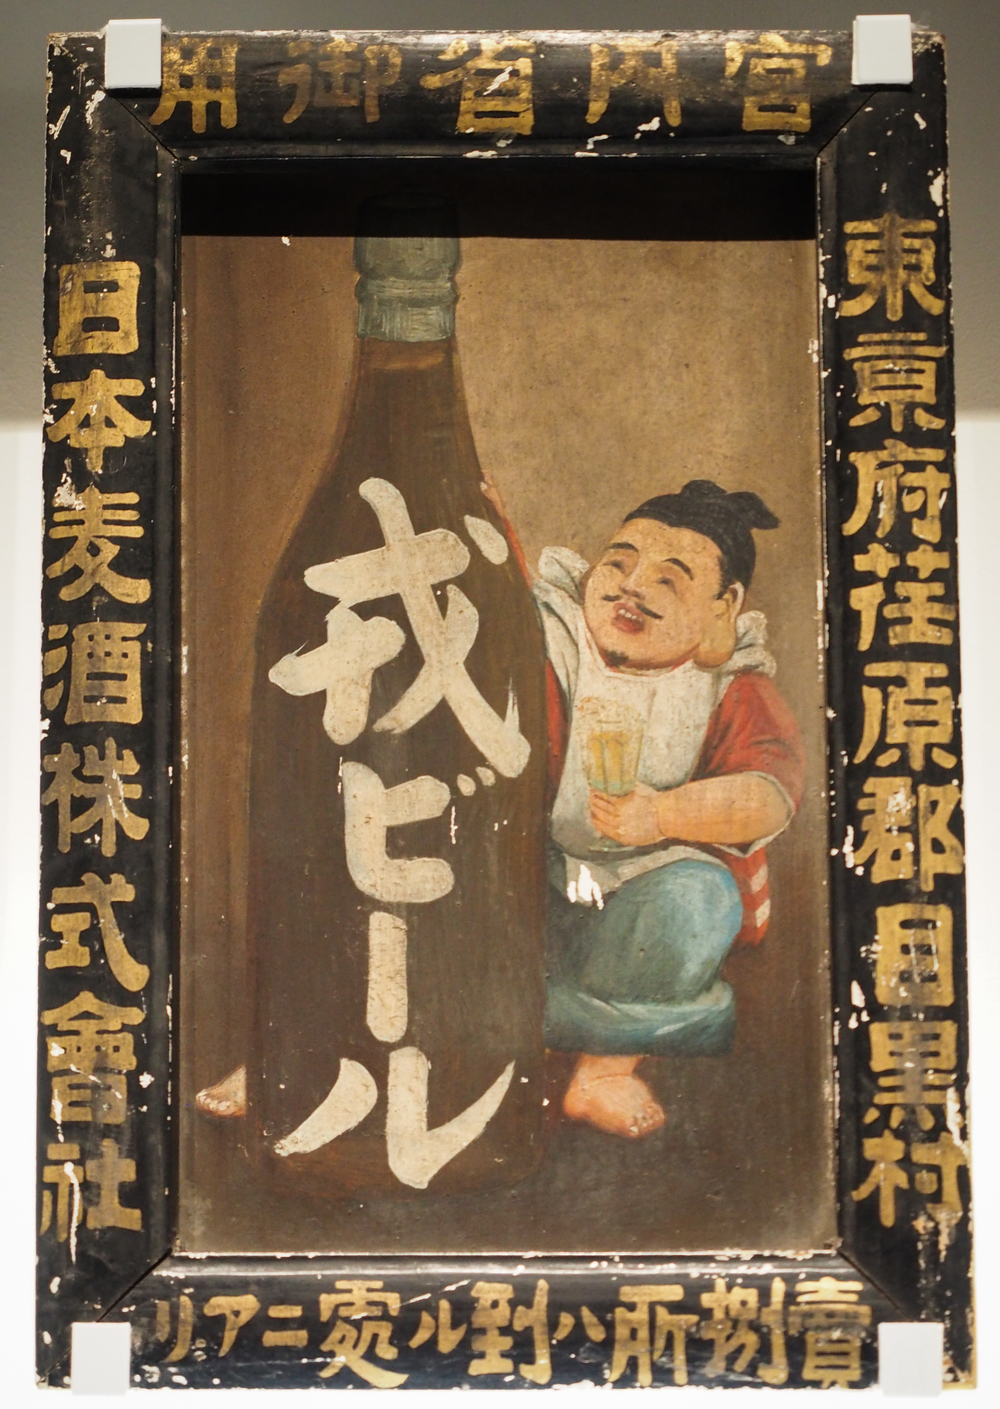 Old Sign for Yebisu Beer